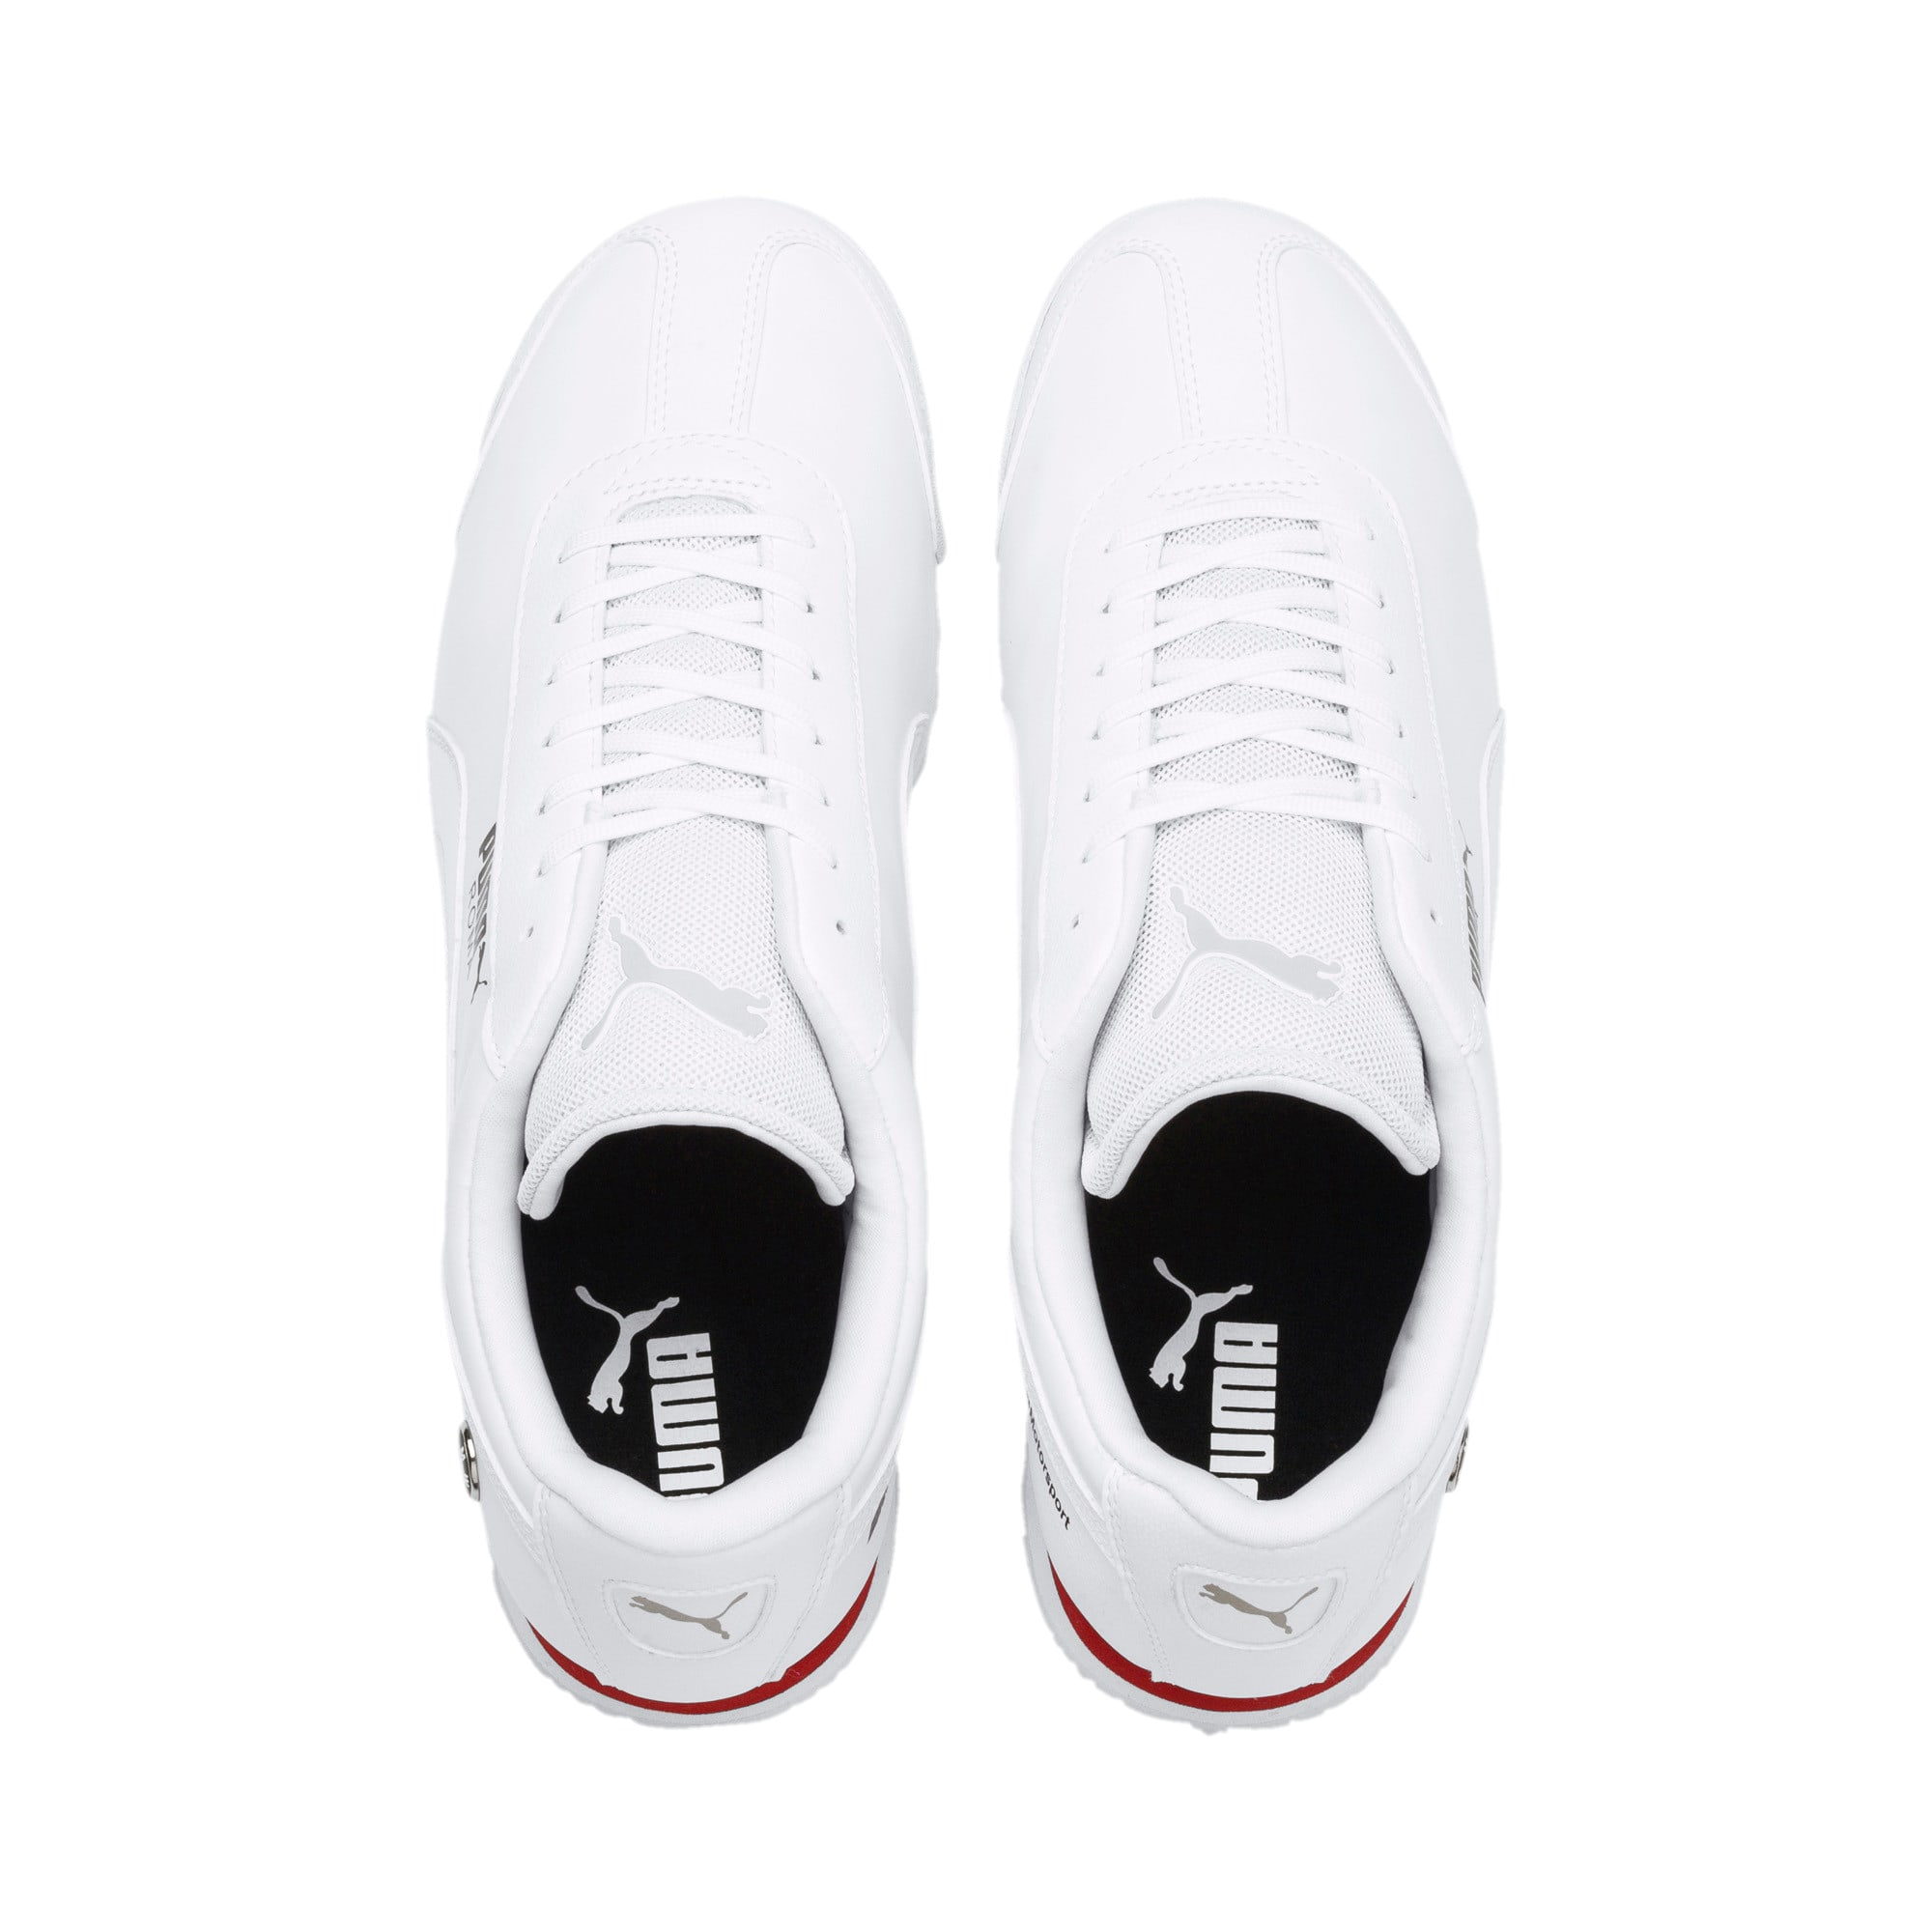 Thumbnail 6 of BMW M Motorsport Roma Men's Sneakers, Puma White-Puma White, medium